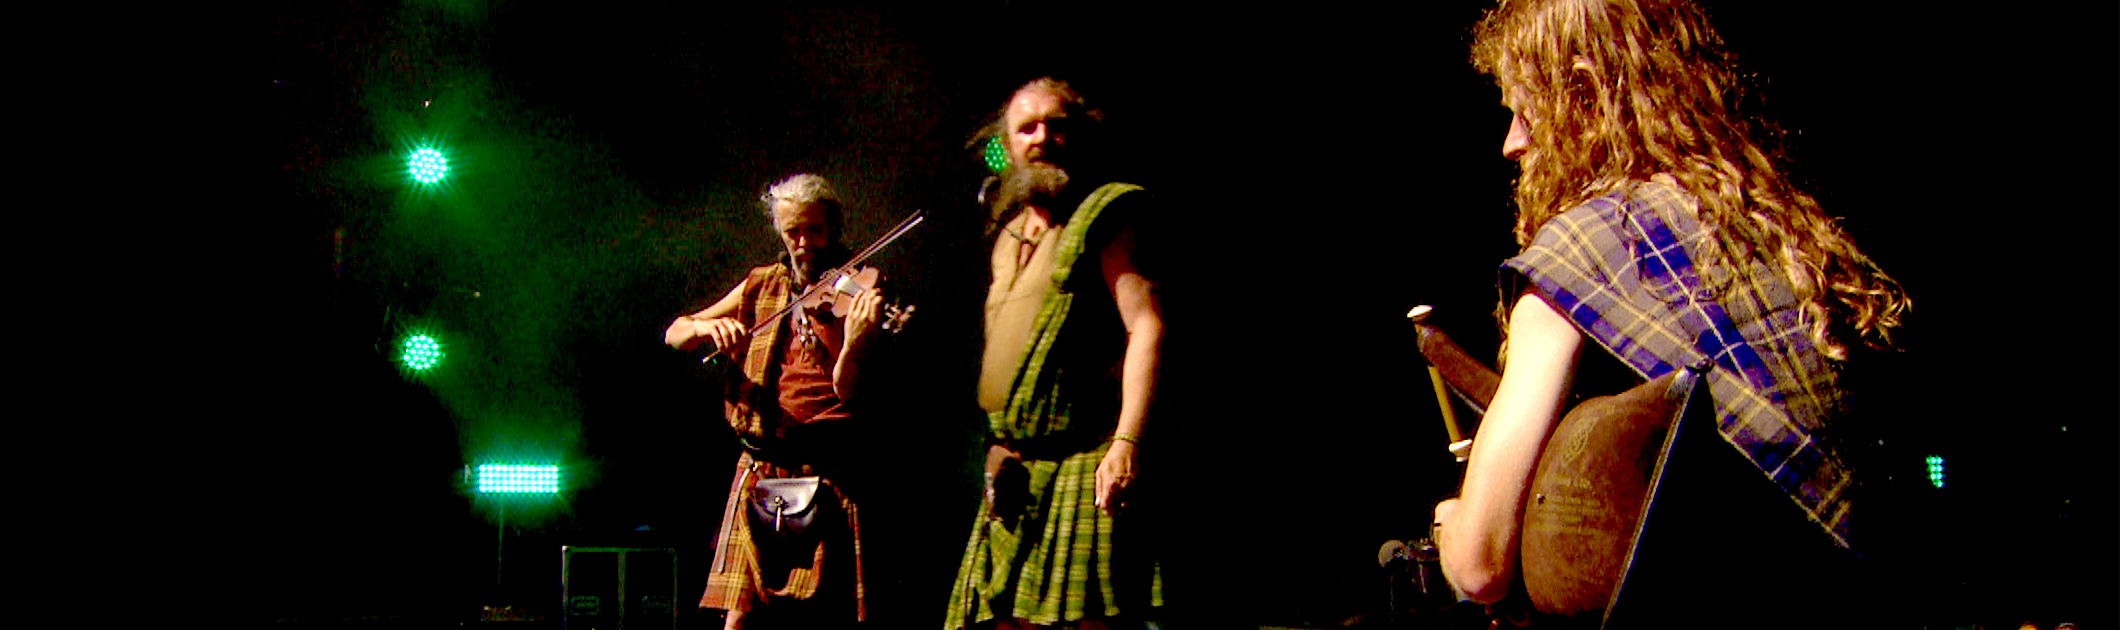 Skyeboat-song-Theme-from-Outlander-Celtic-folk-music-live-performance